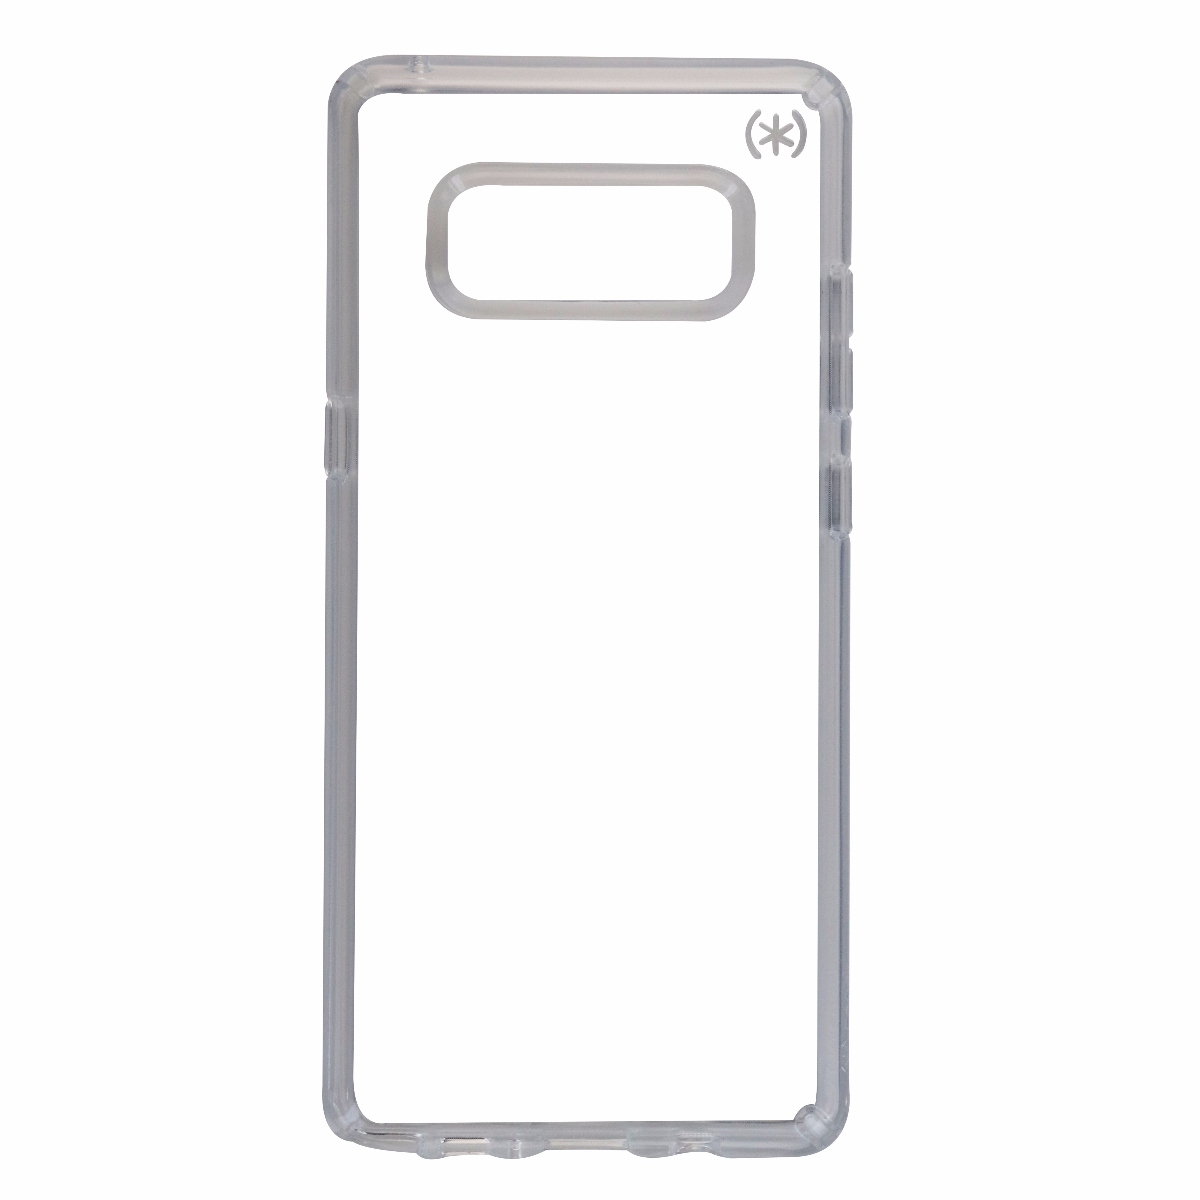 Speck Presidio Clear Series Hard Case Cover for Samsung Galaxy Note 8 - Clear